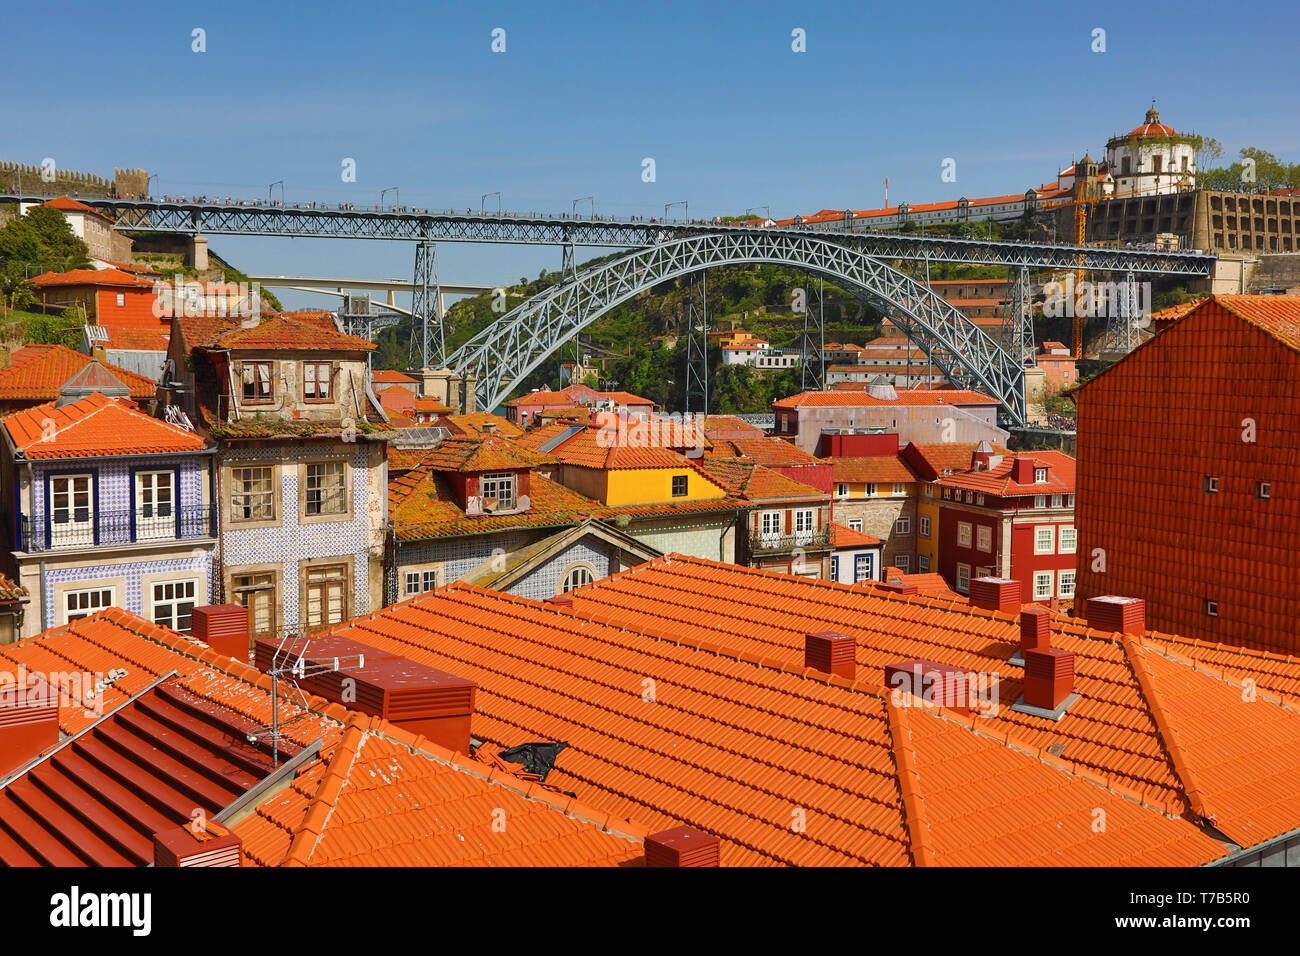 Metal Roofs Stock Photos Amp Metal Roofs Stock Images Alamy